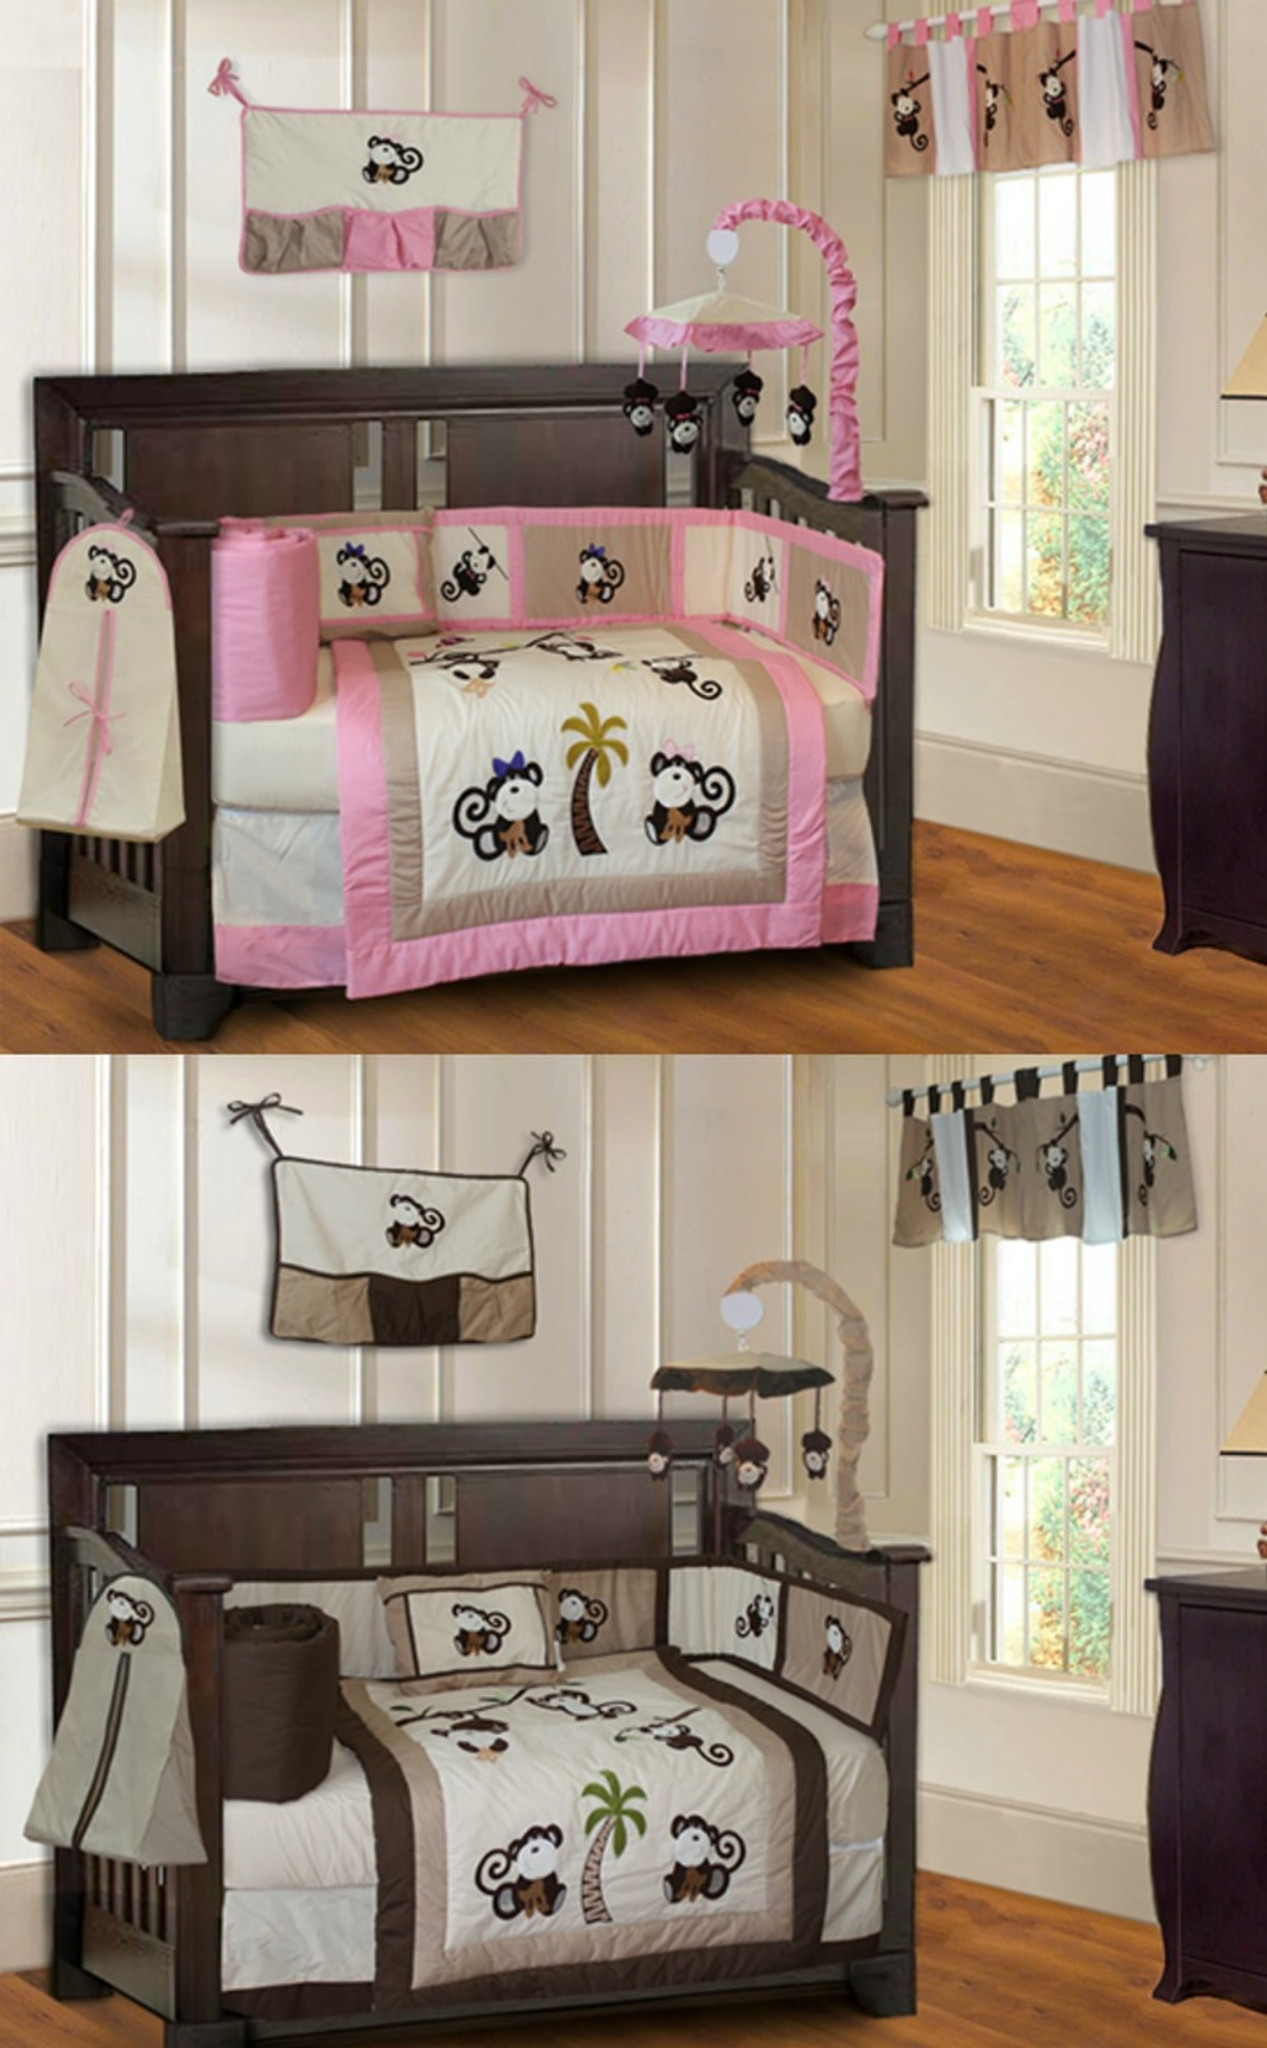 Pink and Brown Monkey 20 Piece Nursery Set - Stuff 4 Multiples